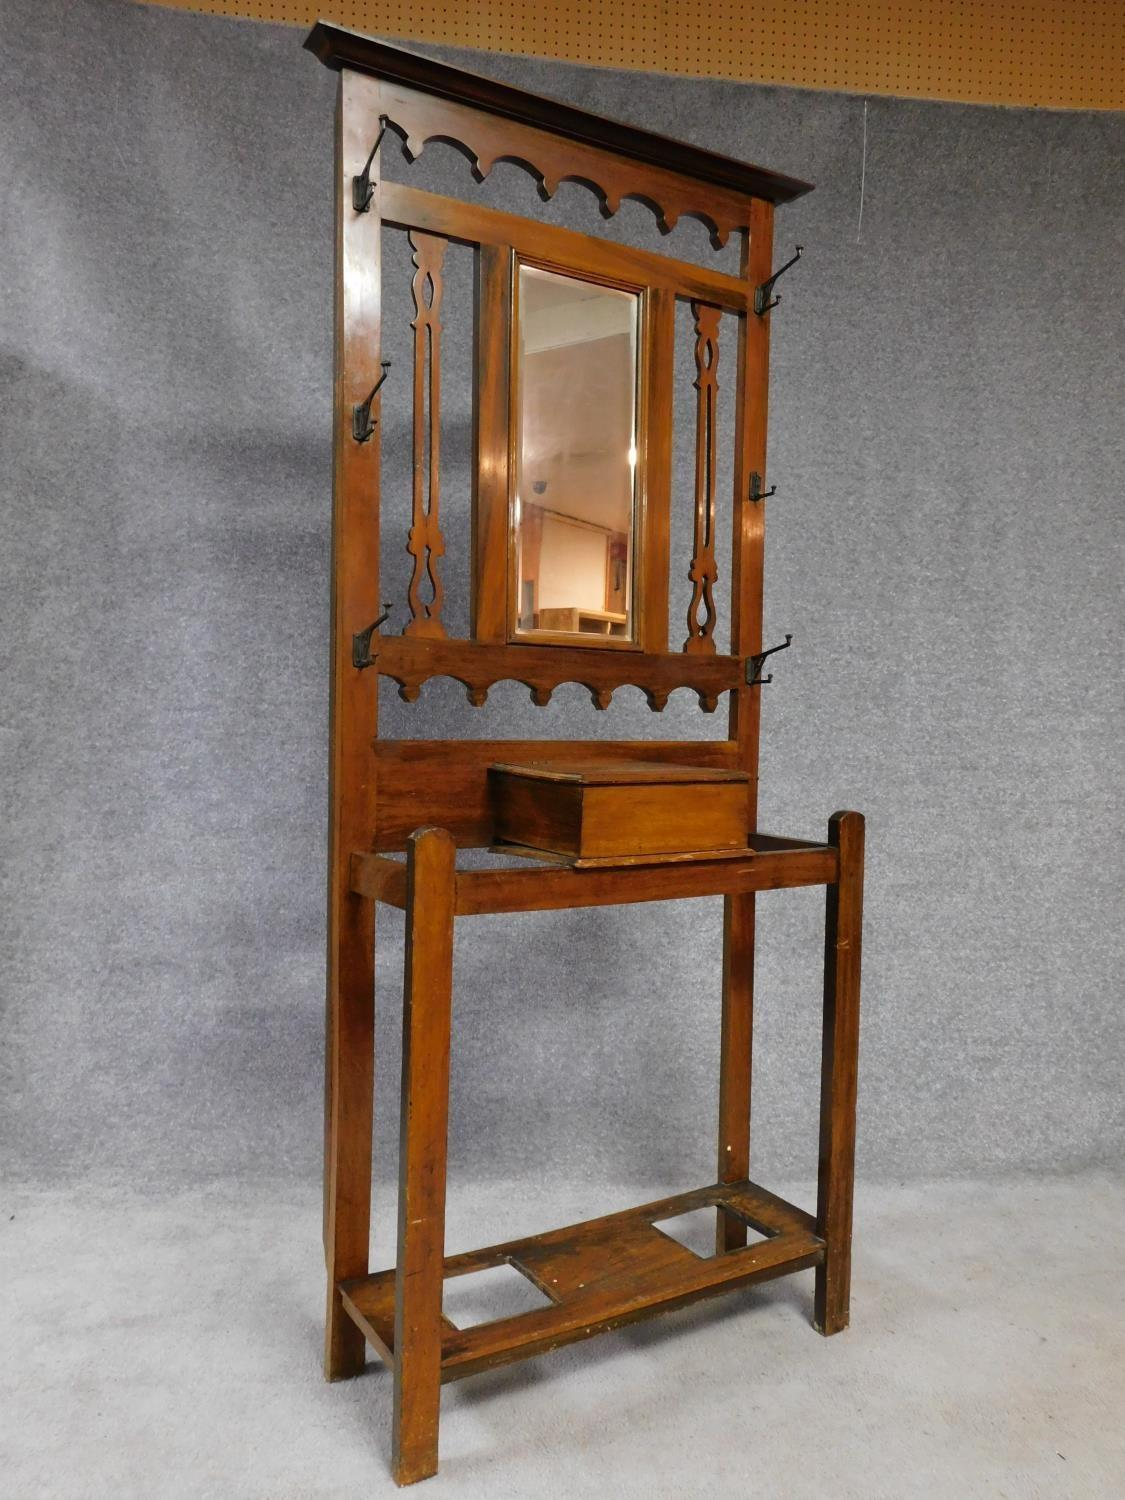 A 19th century Art Nouveau walnut hallstand with central mirror above glove compartment with - Image 2 of 6